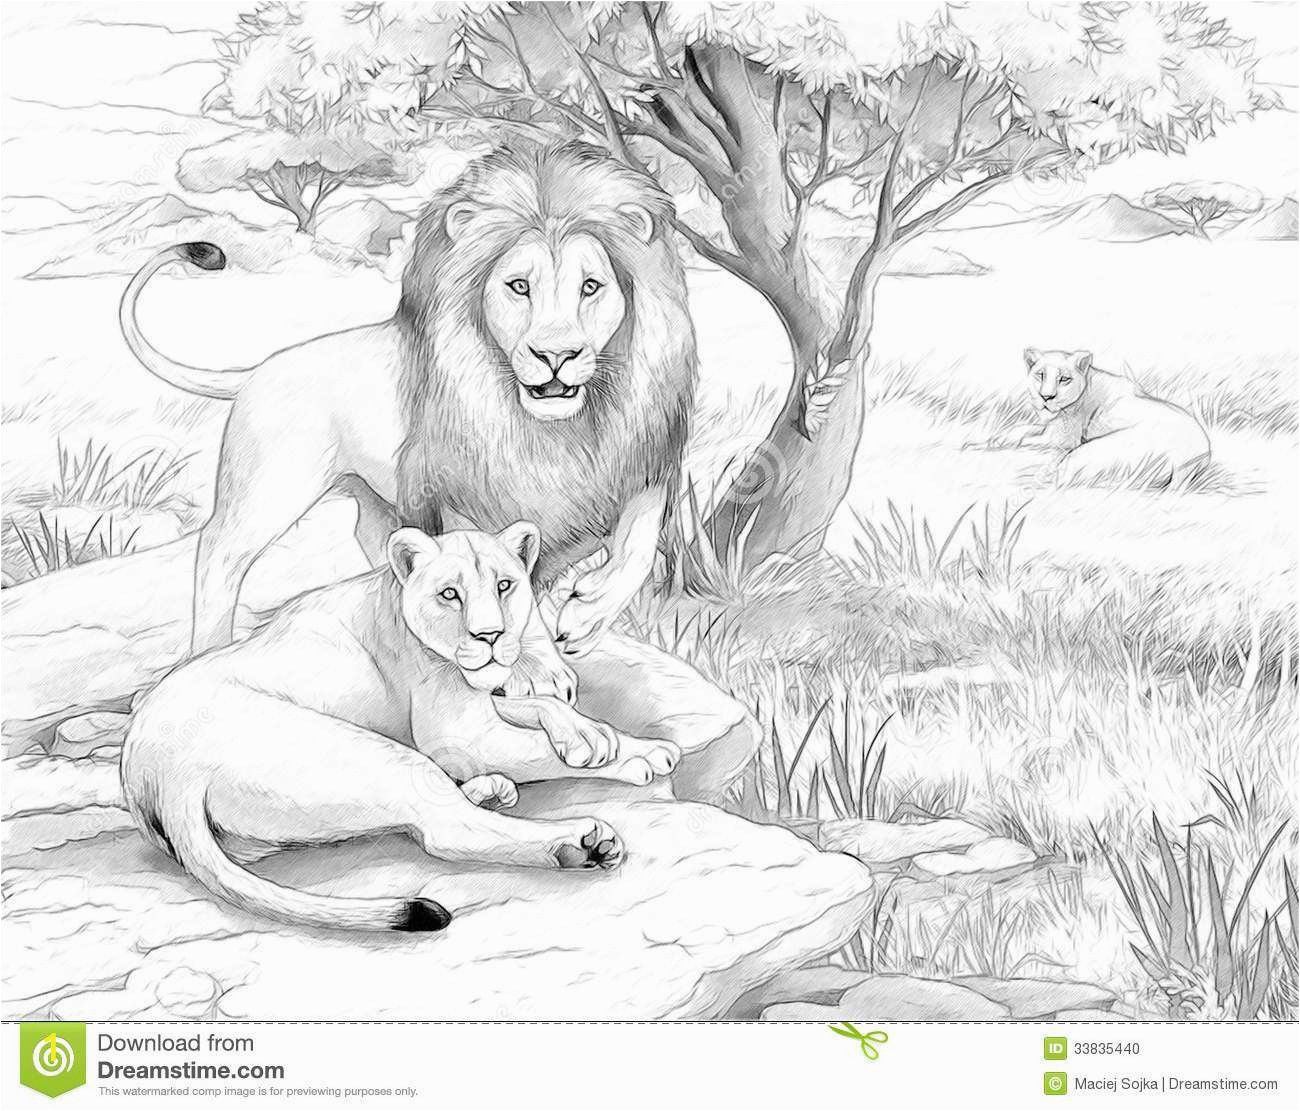 f619bc760bc498ac0d1c edcea84 now printable lion pictures real animals coloring pages for kids 1300 1111